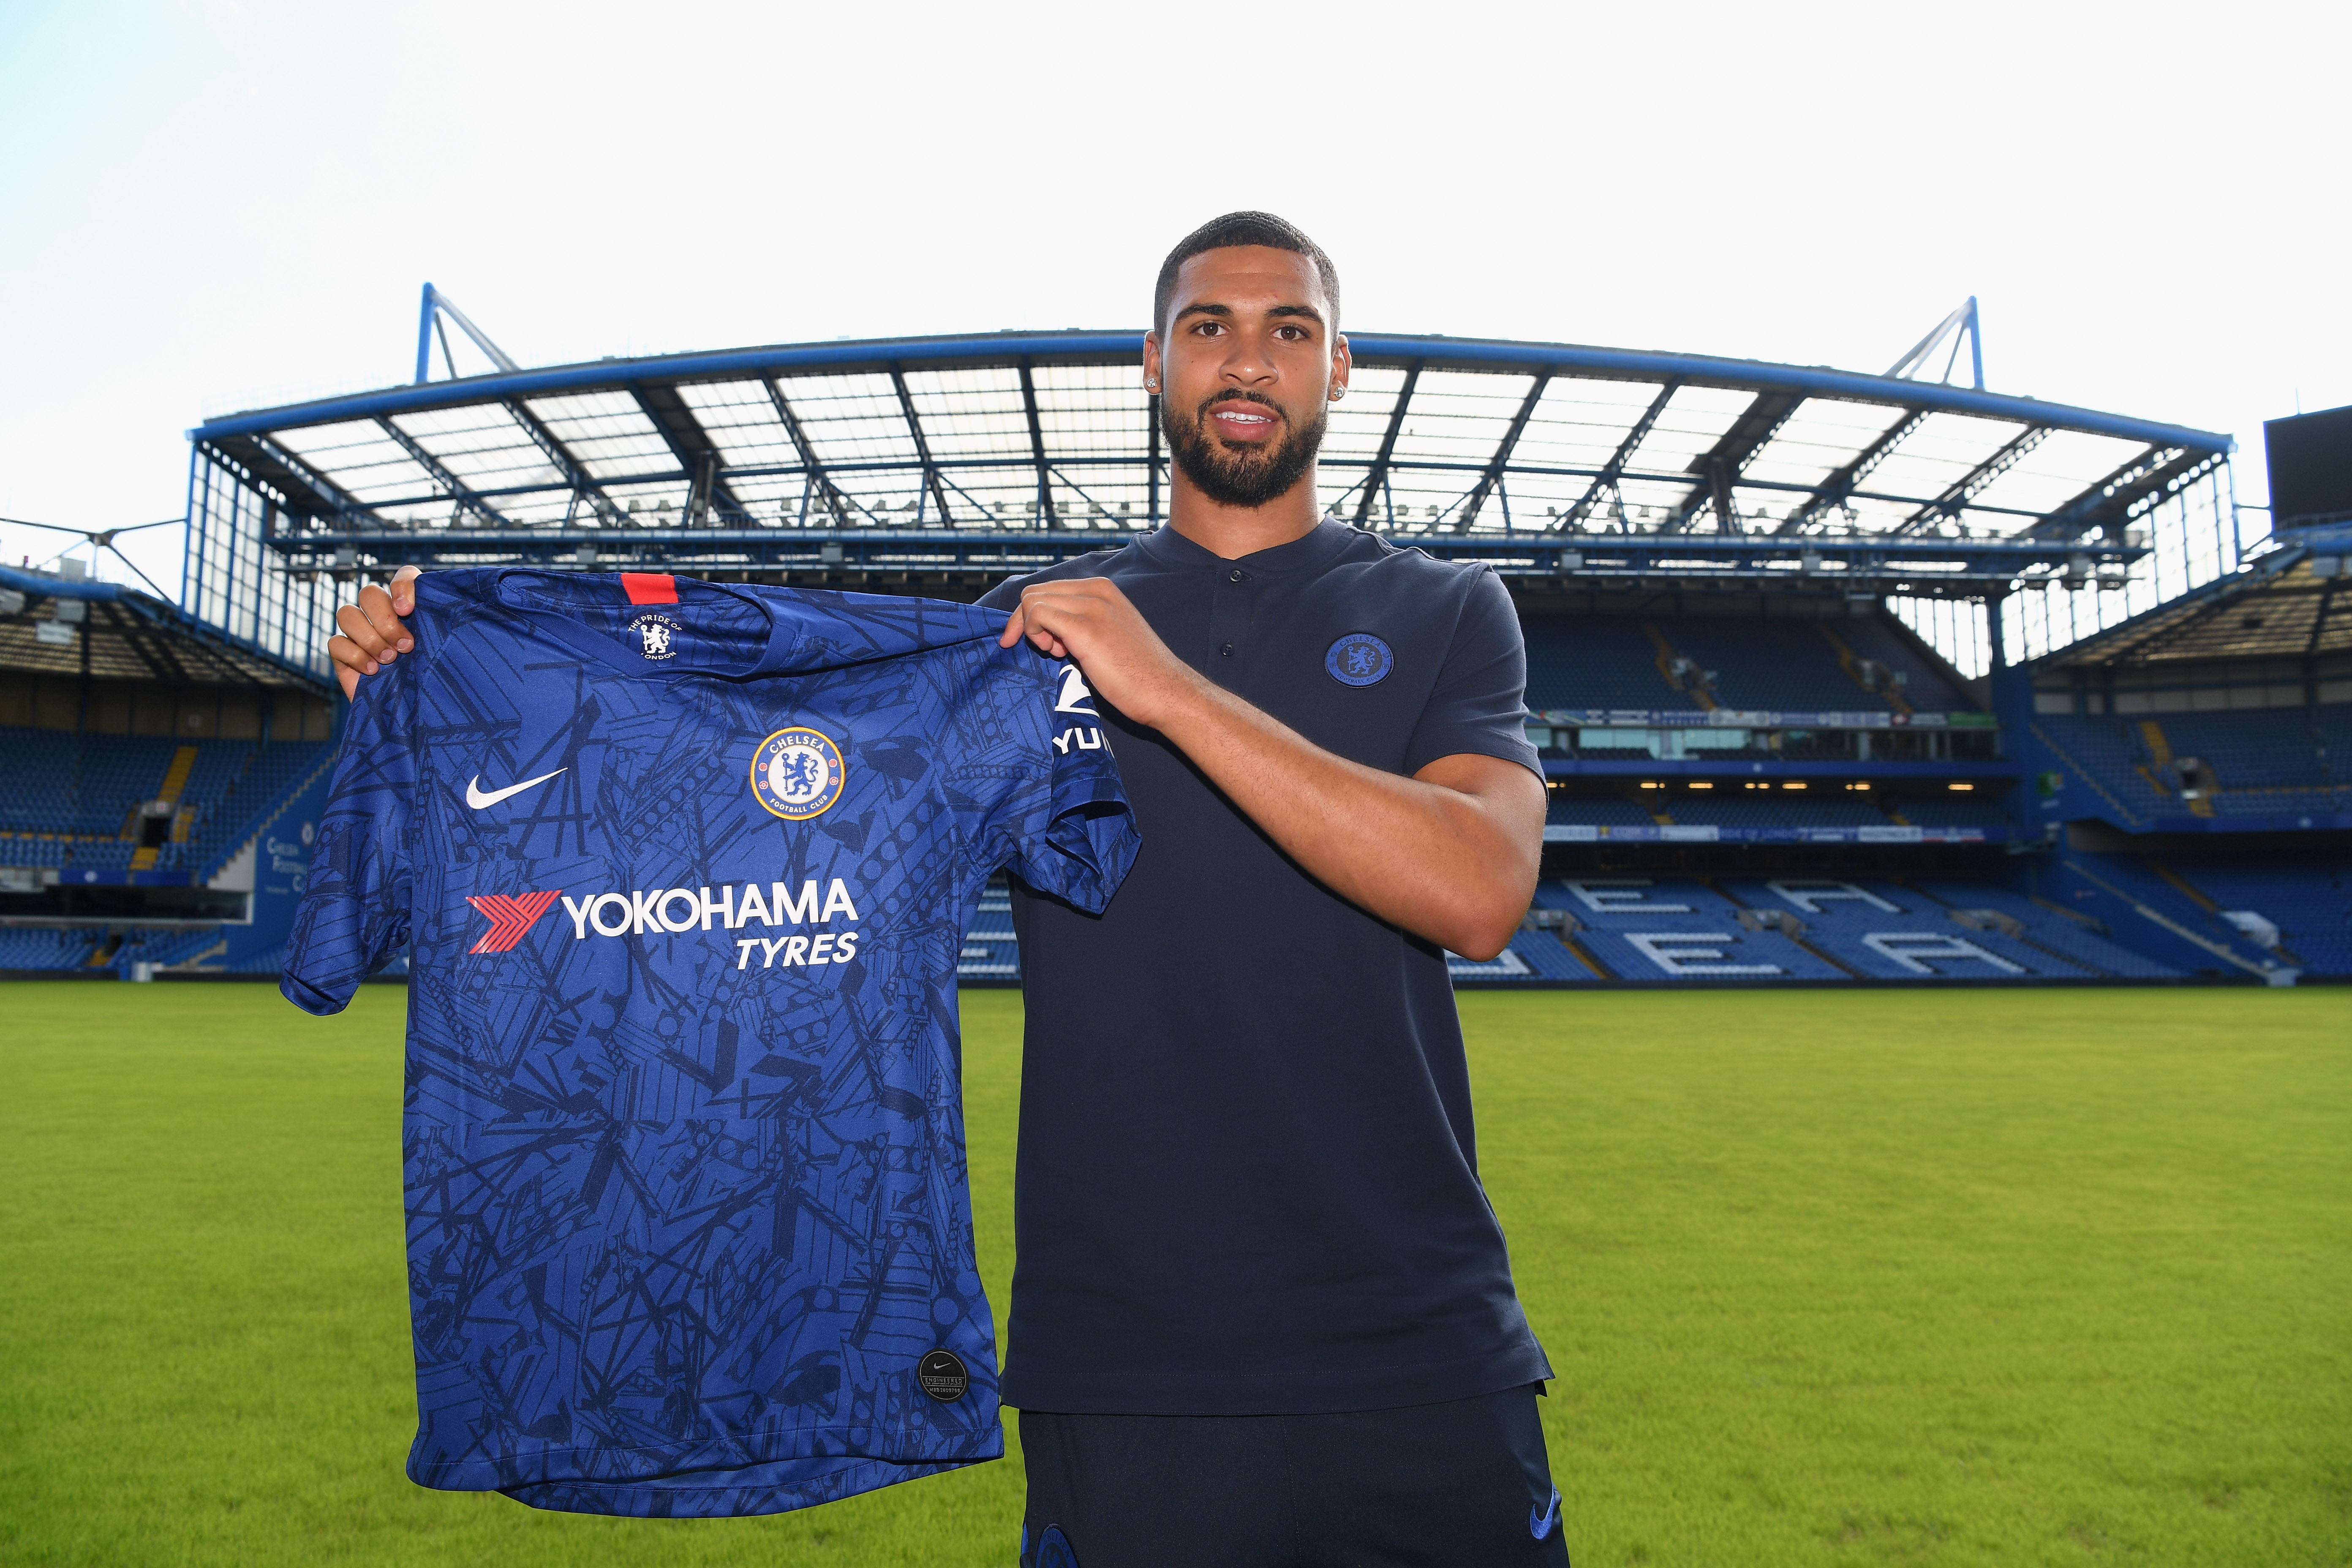 39876022 Loftus-Cheek goes for first run in the pool in next step of Achilles  rupture recovery